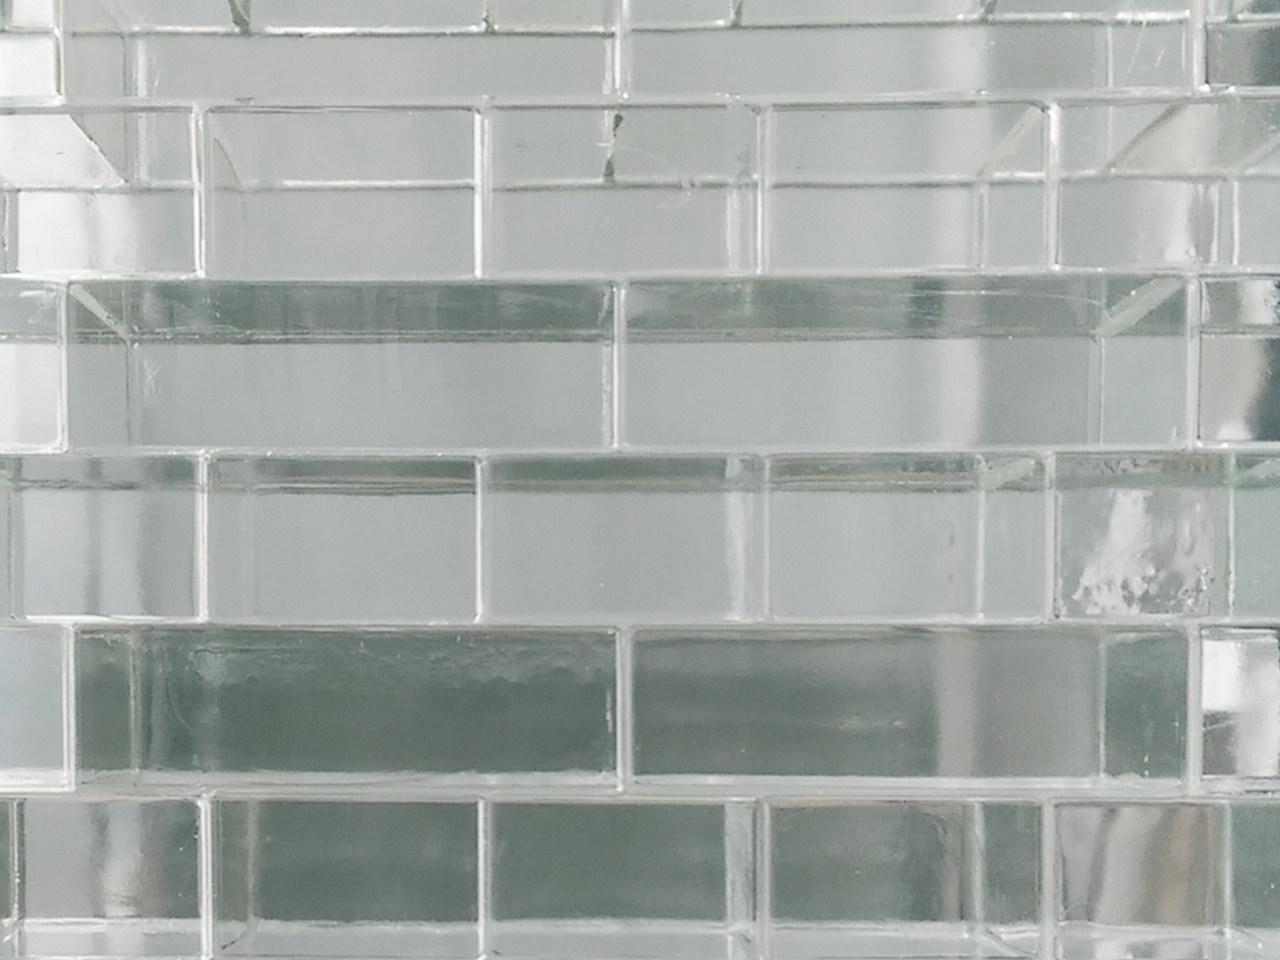 Wall of glass bricks designed by MVRDV featured in Dutch Design Week until November 15th